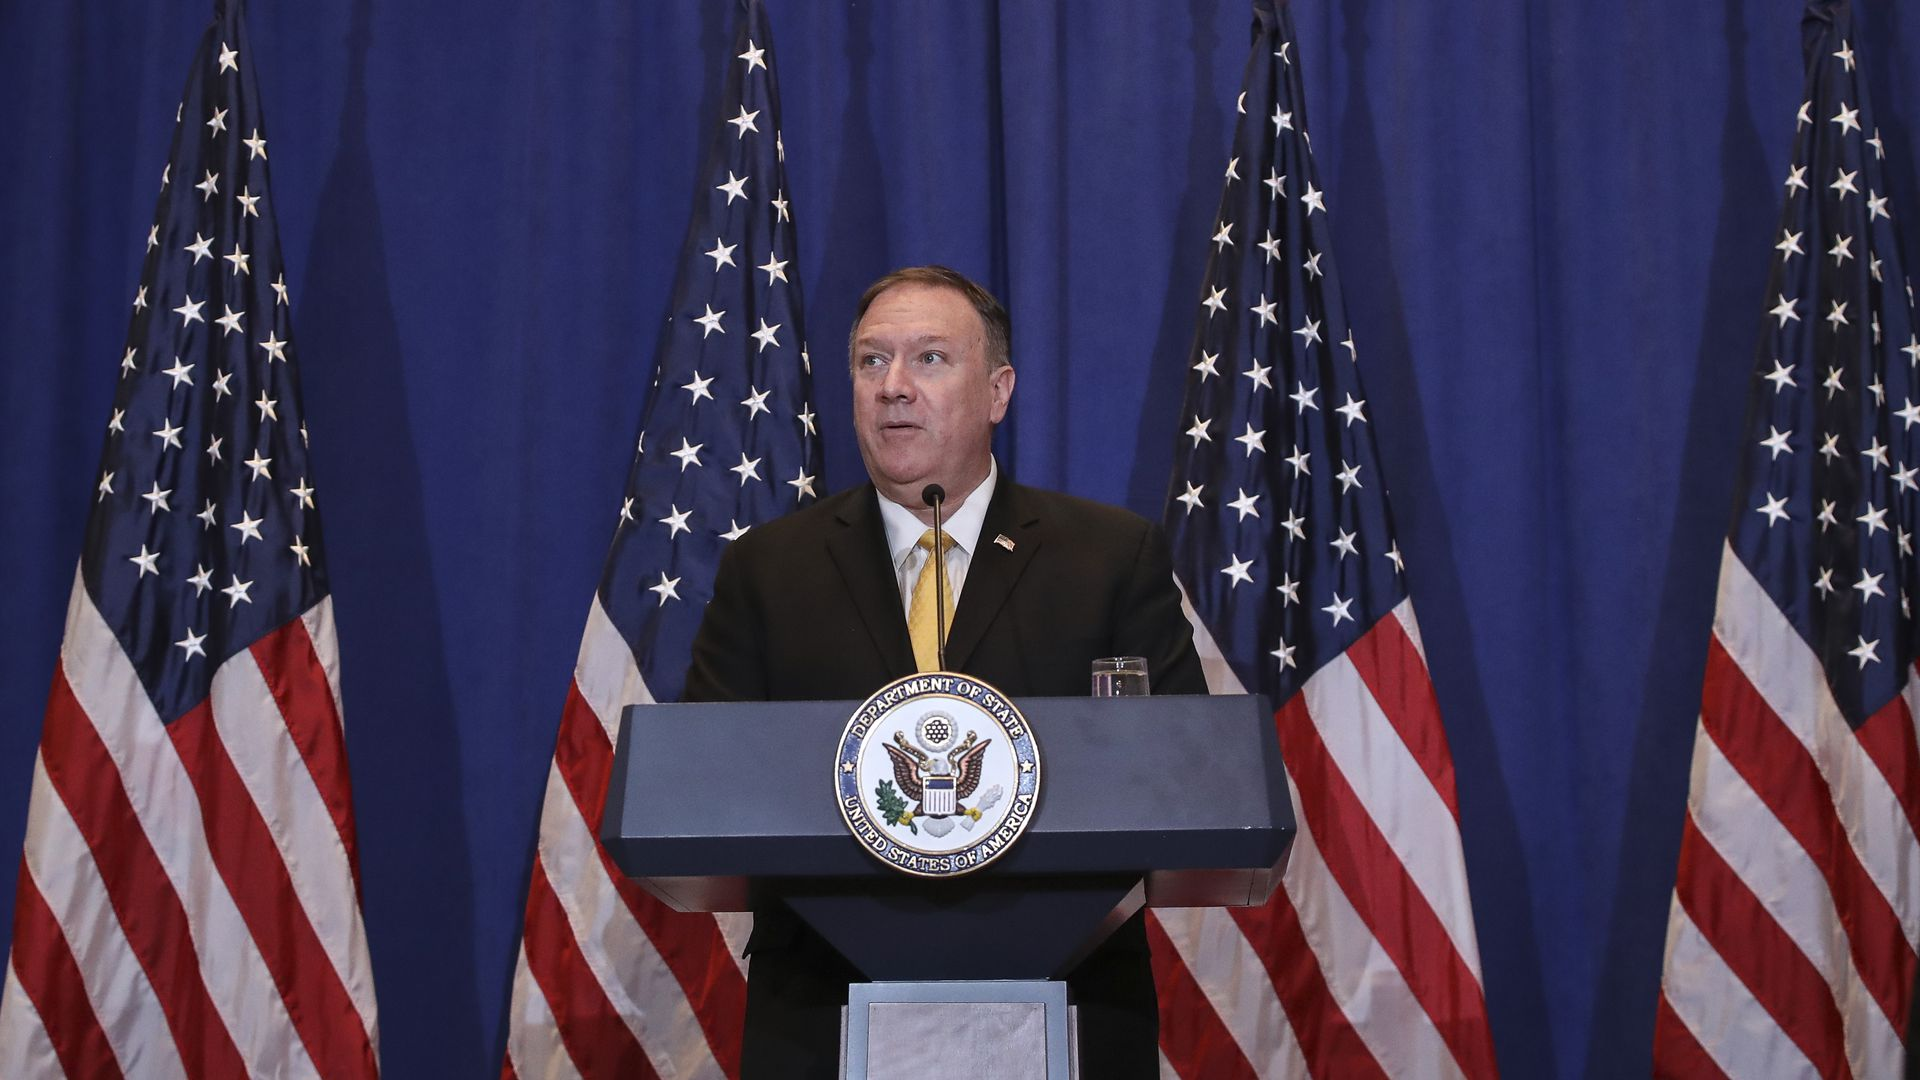 Secretary of State Mike Pompeo speaks during a press conference on the sidelines of the United Nations General Assembly on September 26